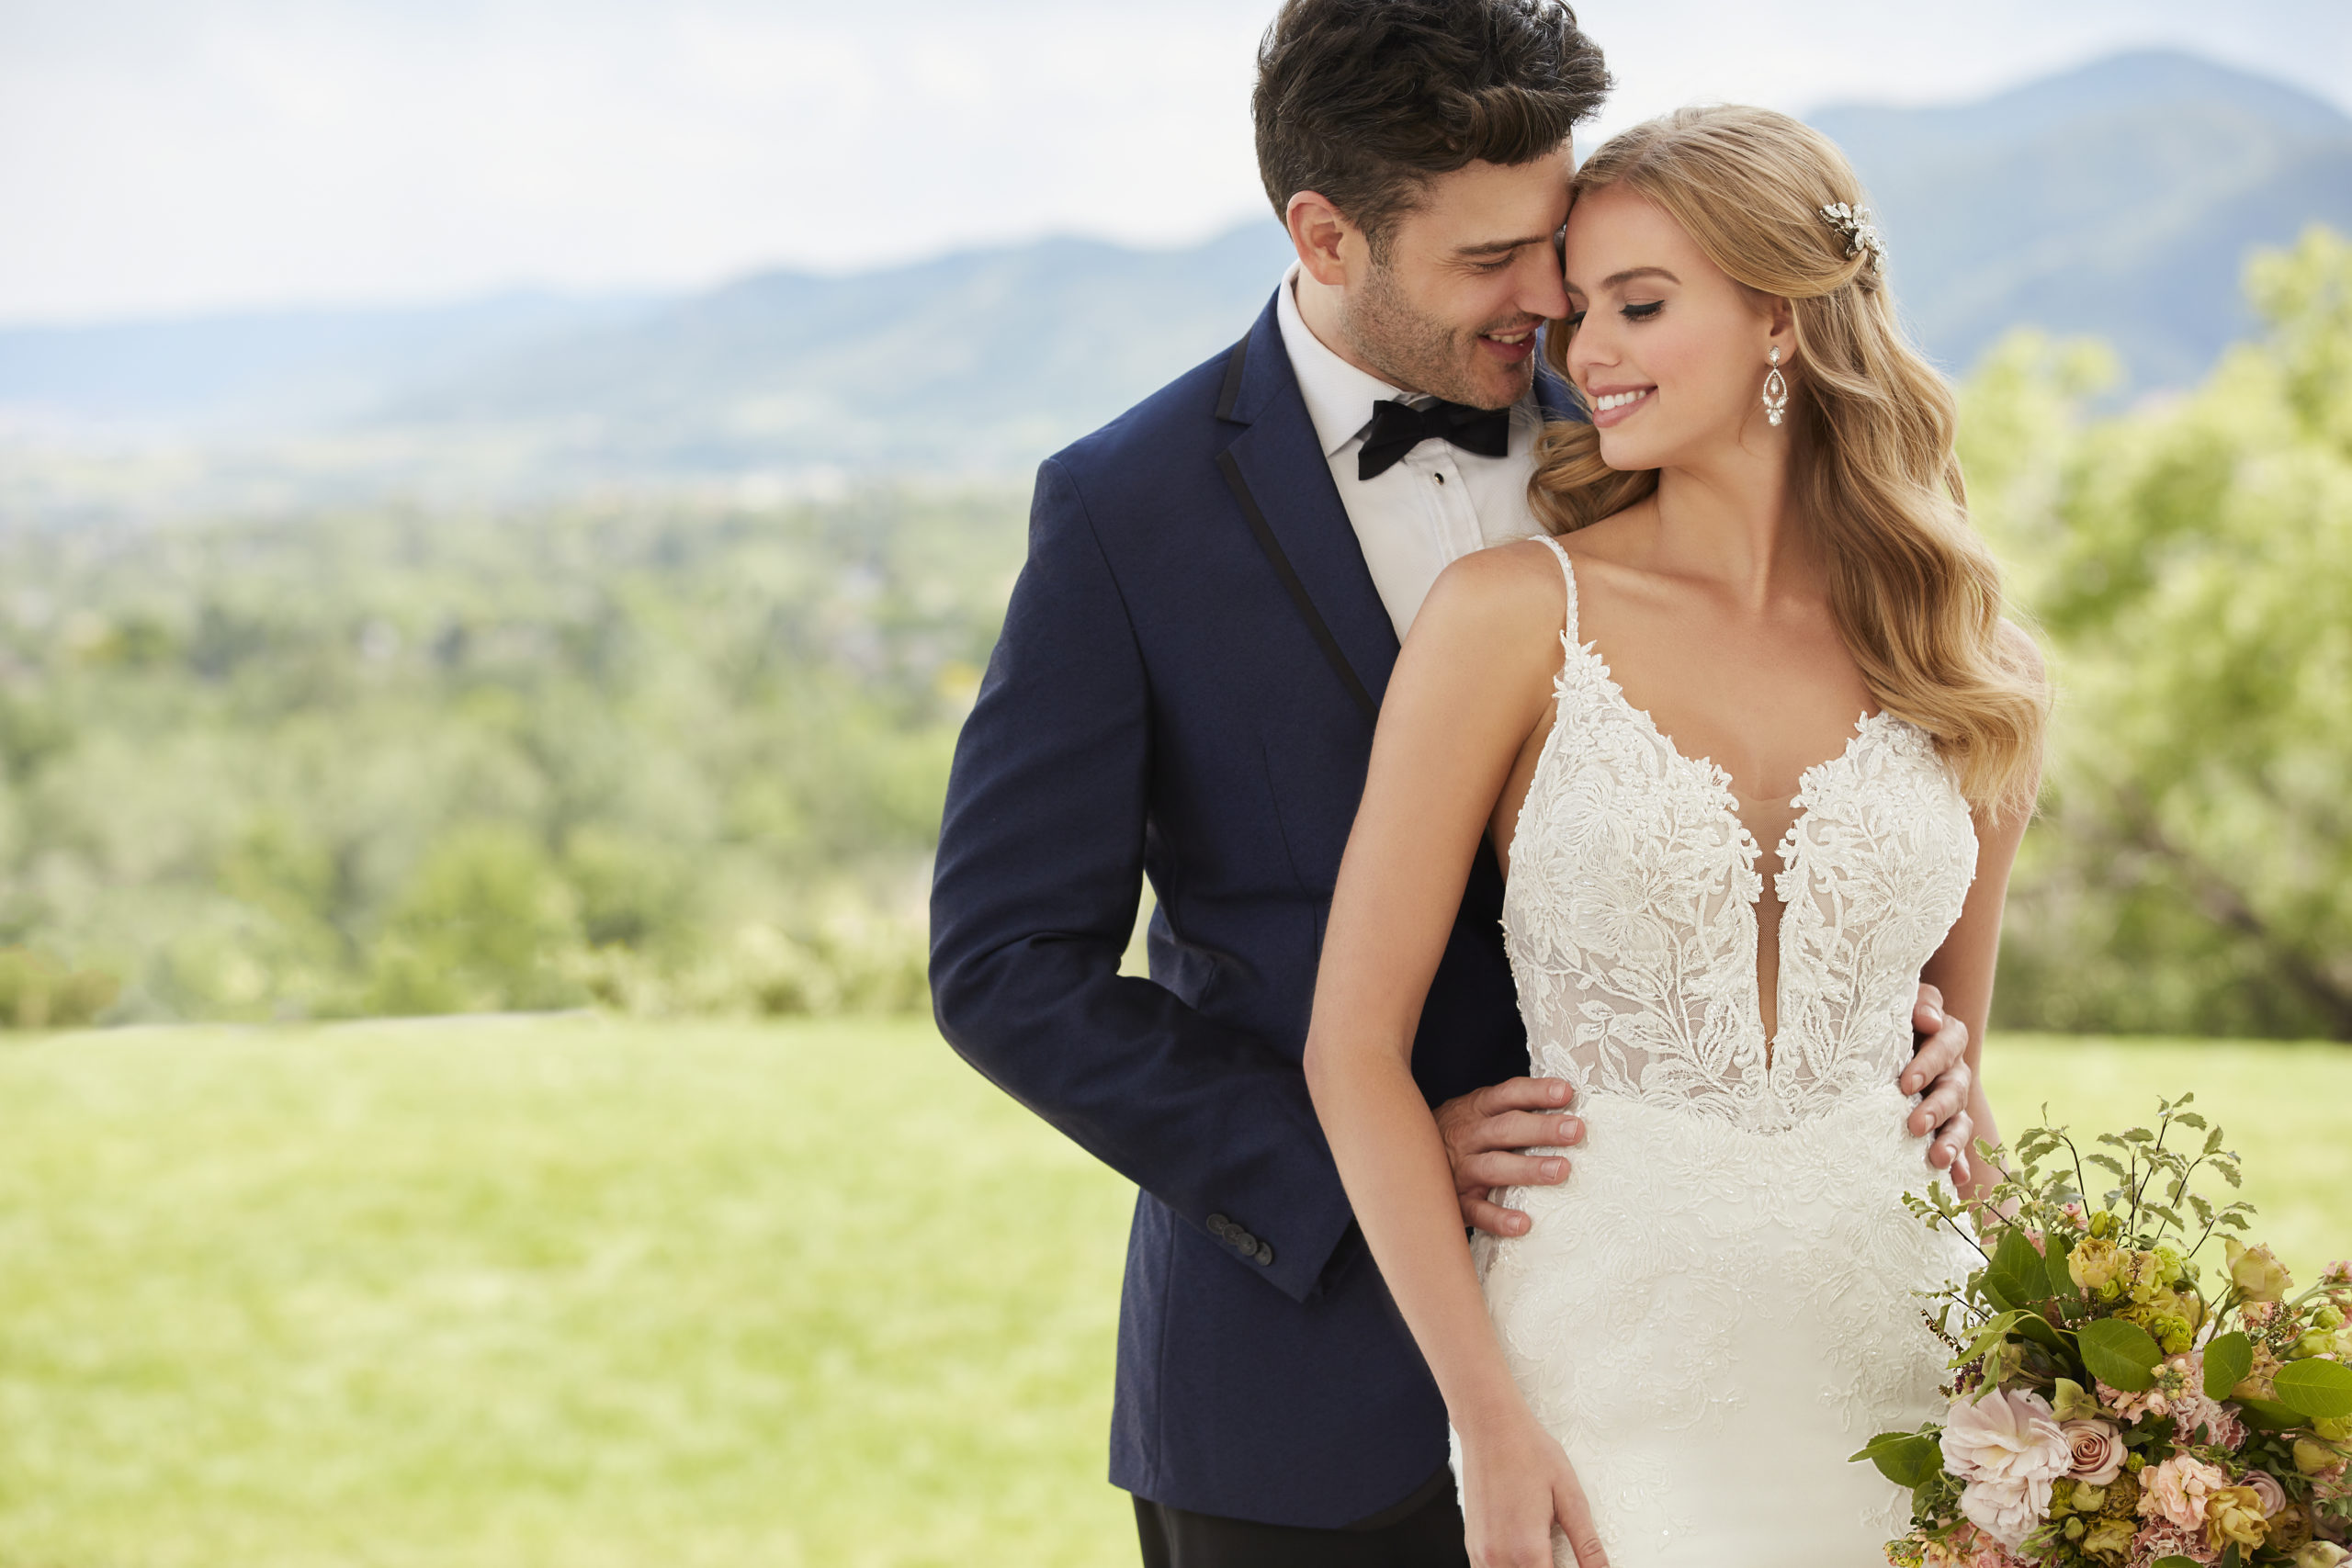 Love Without Limits: Martina Liana's Latest Collection of Elegant Wedding Dresses